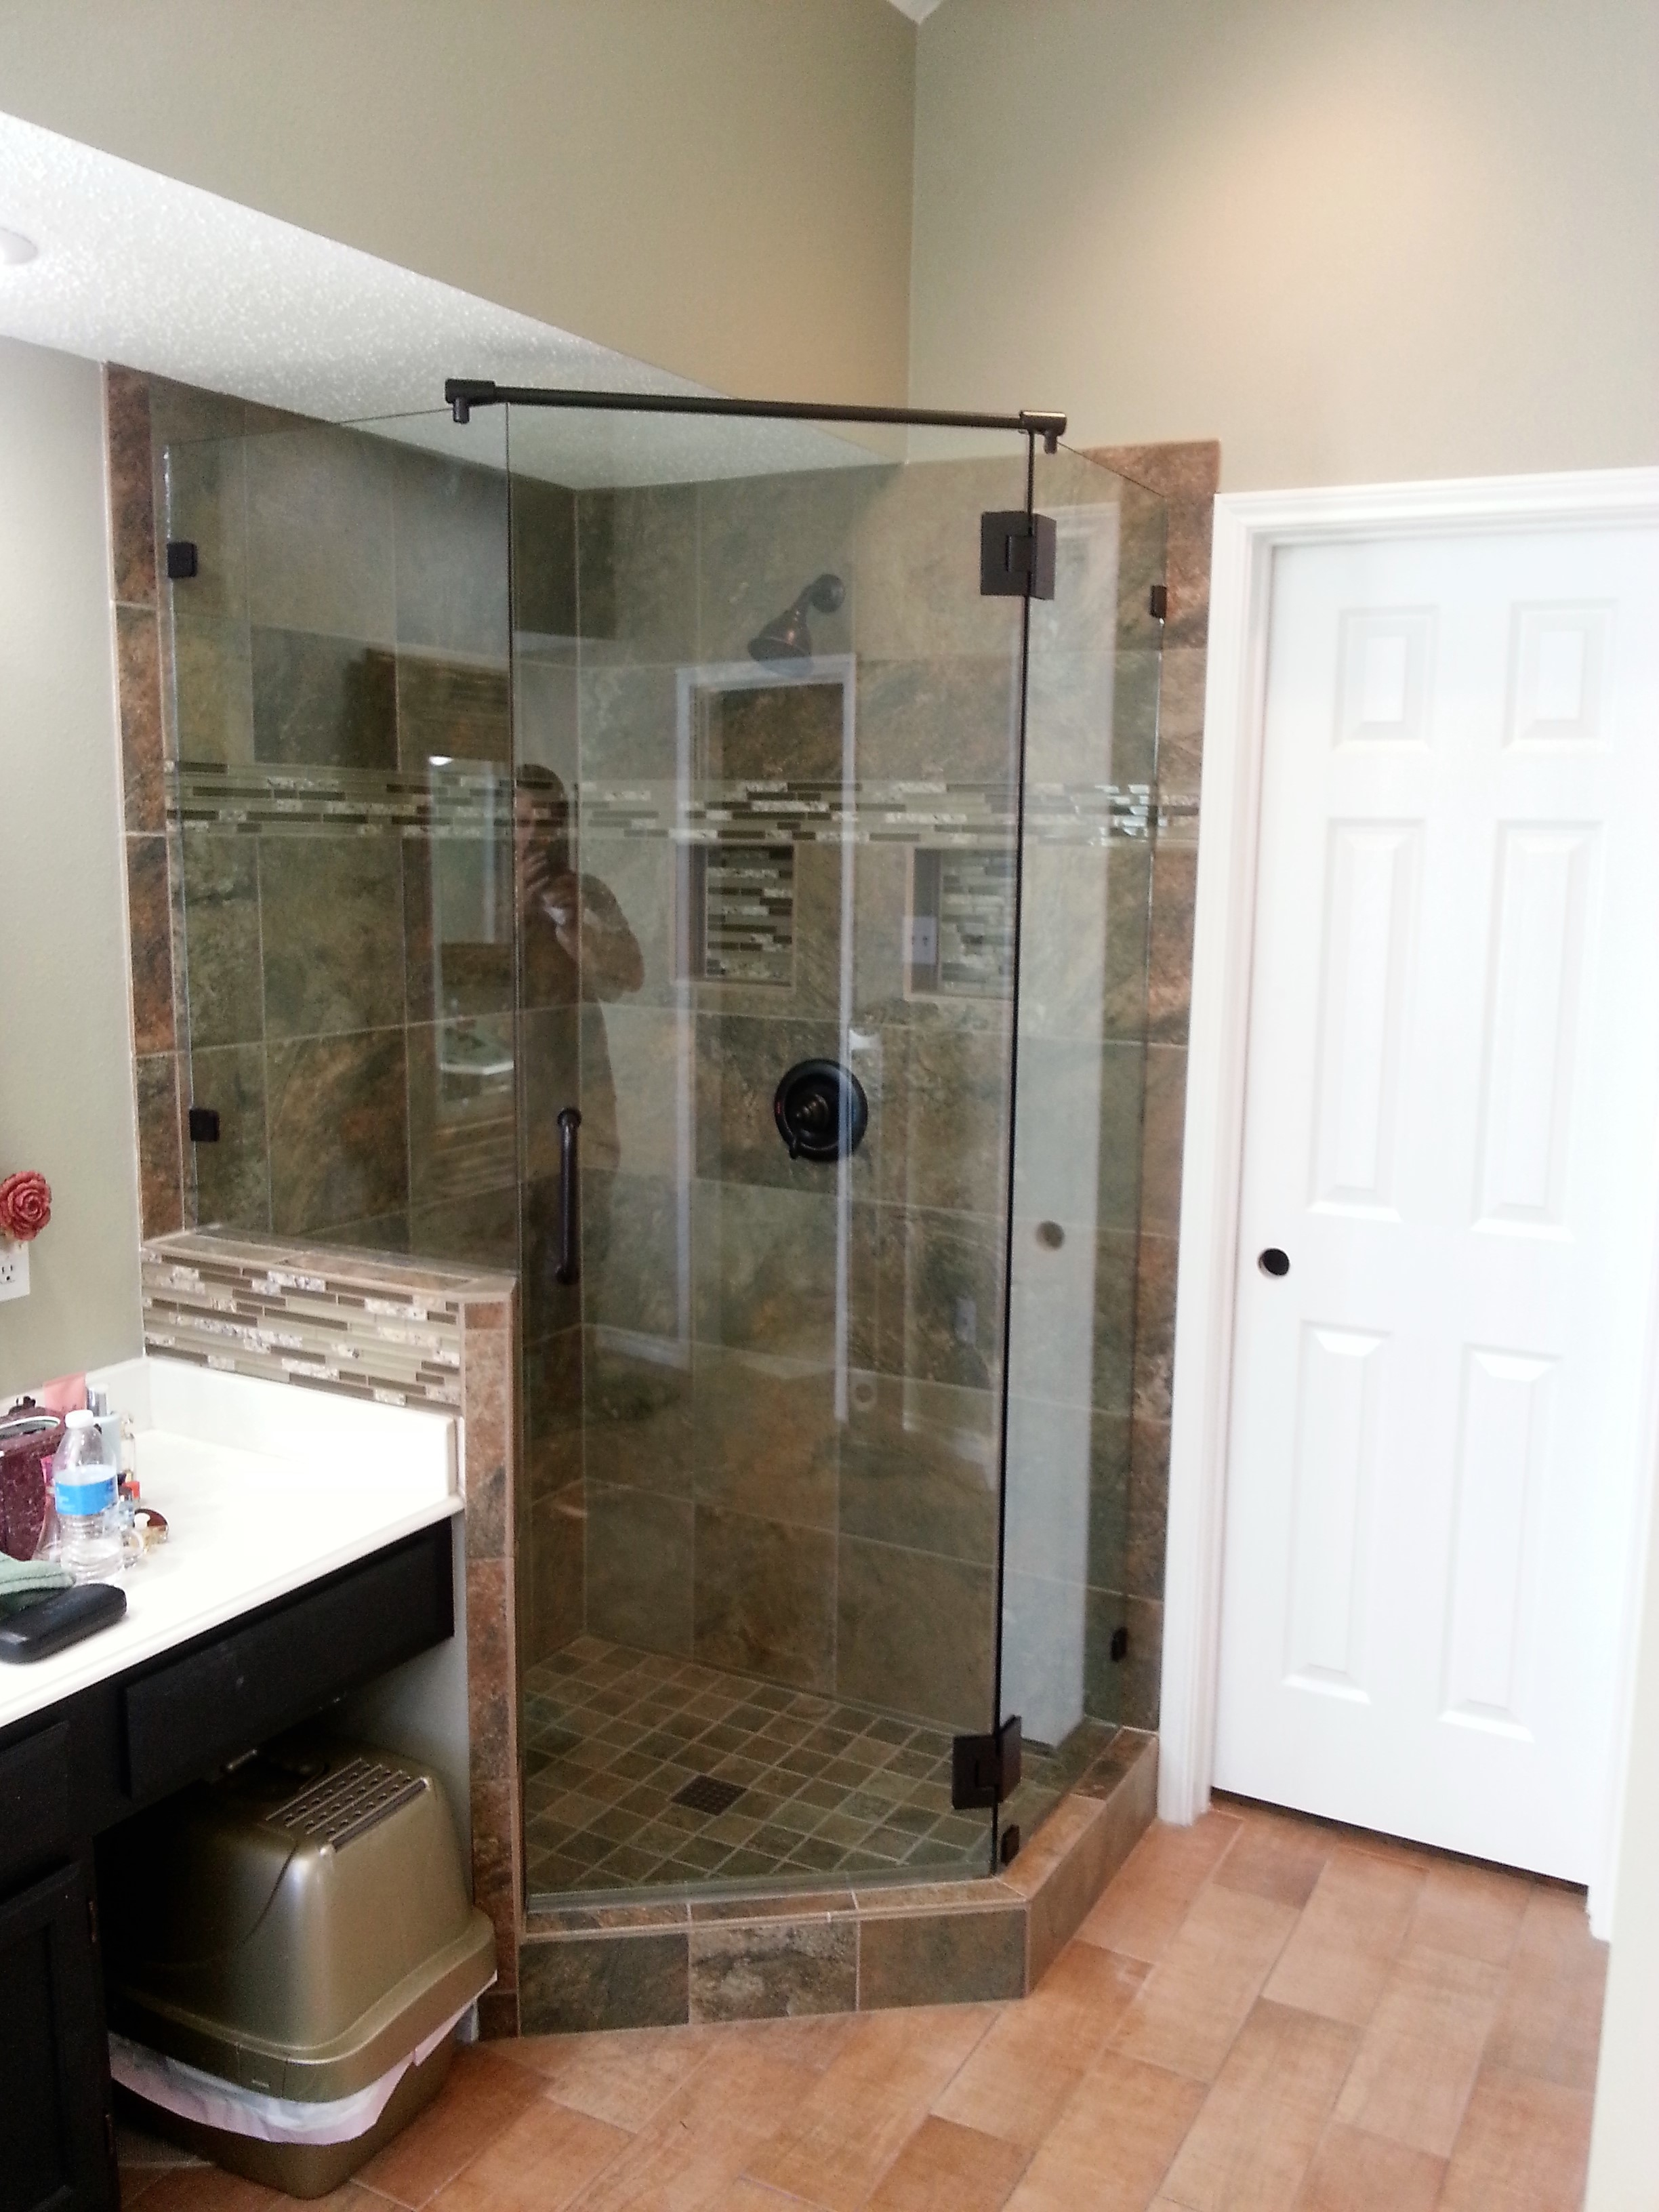 My Affordable Glass And Remodeling In Lewisville Tx 75057